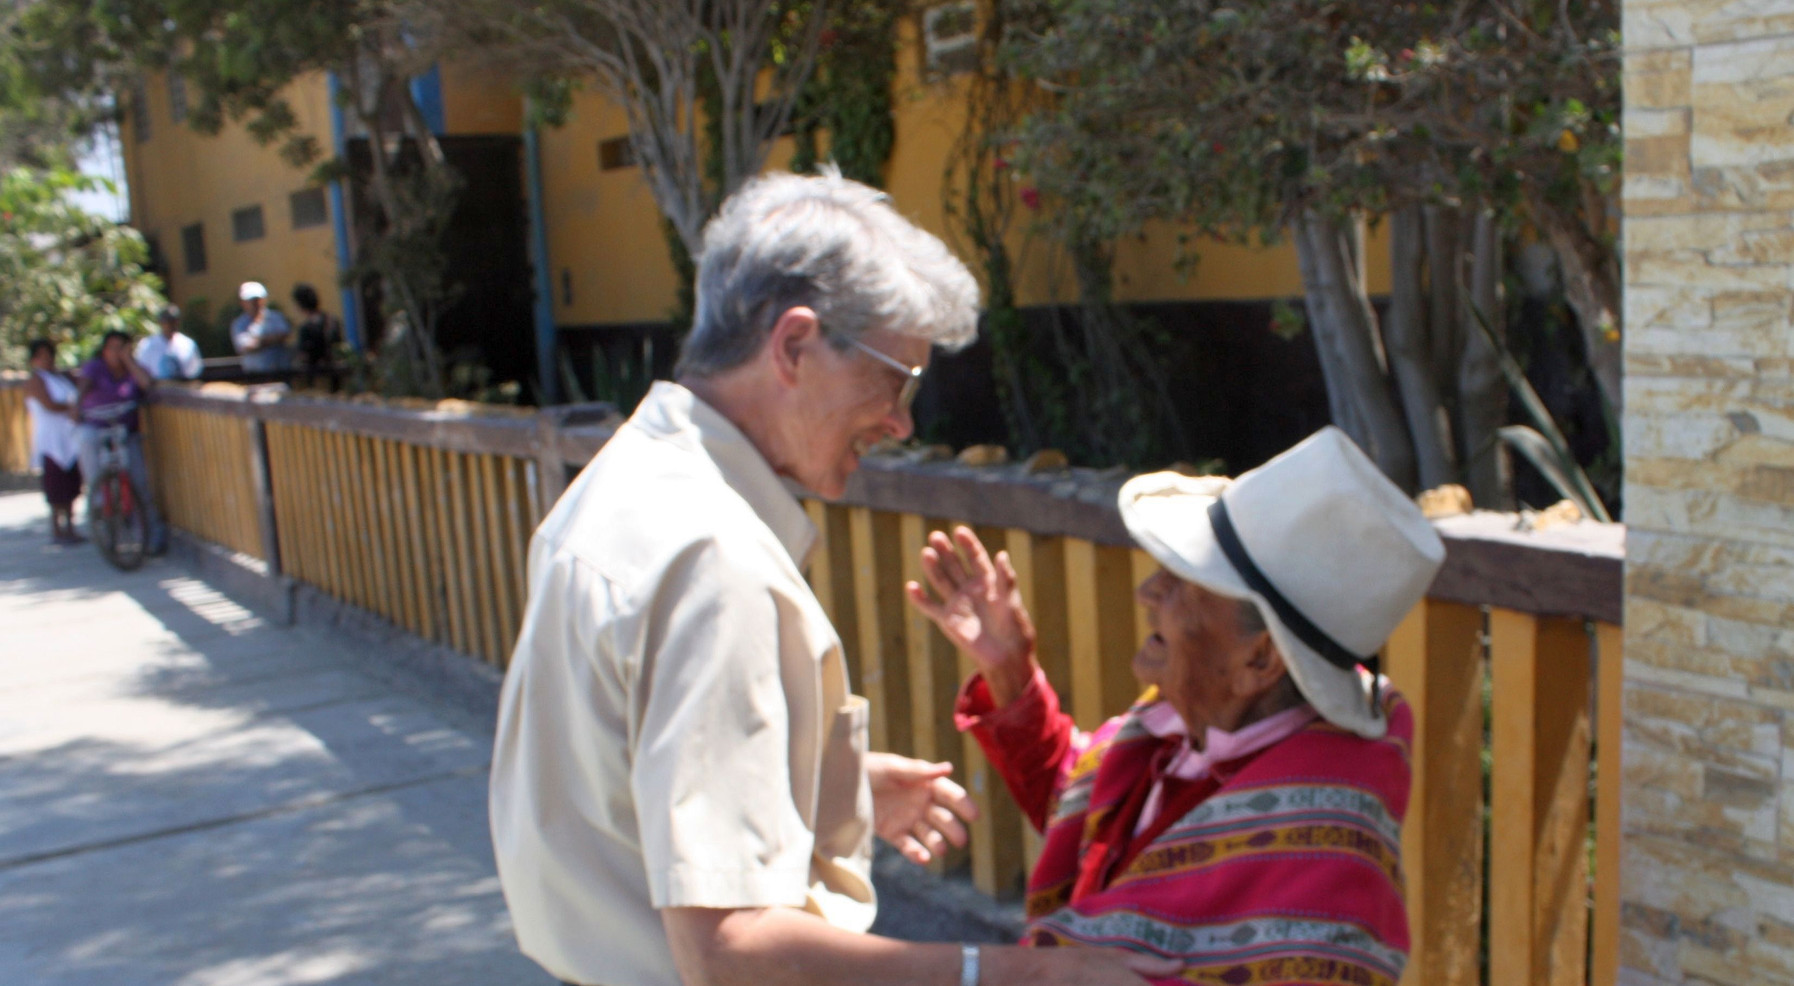 """After serving as a nurse, in hospital administration, and as a congregational leader, Sr. Juanita Albracht felt called to work with the Peruvian people. She was inspired by how """"they could be happy in such extreme poverty. This called me to want to experience their lives with them."""""""